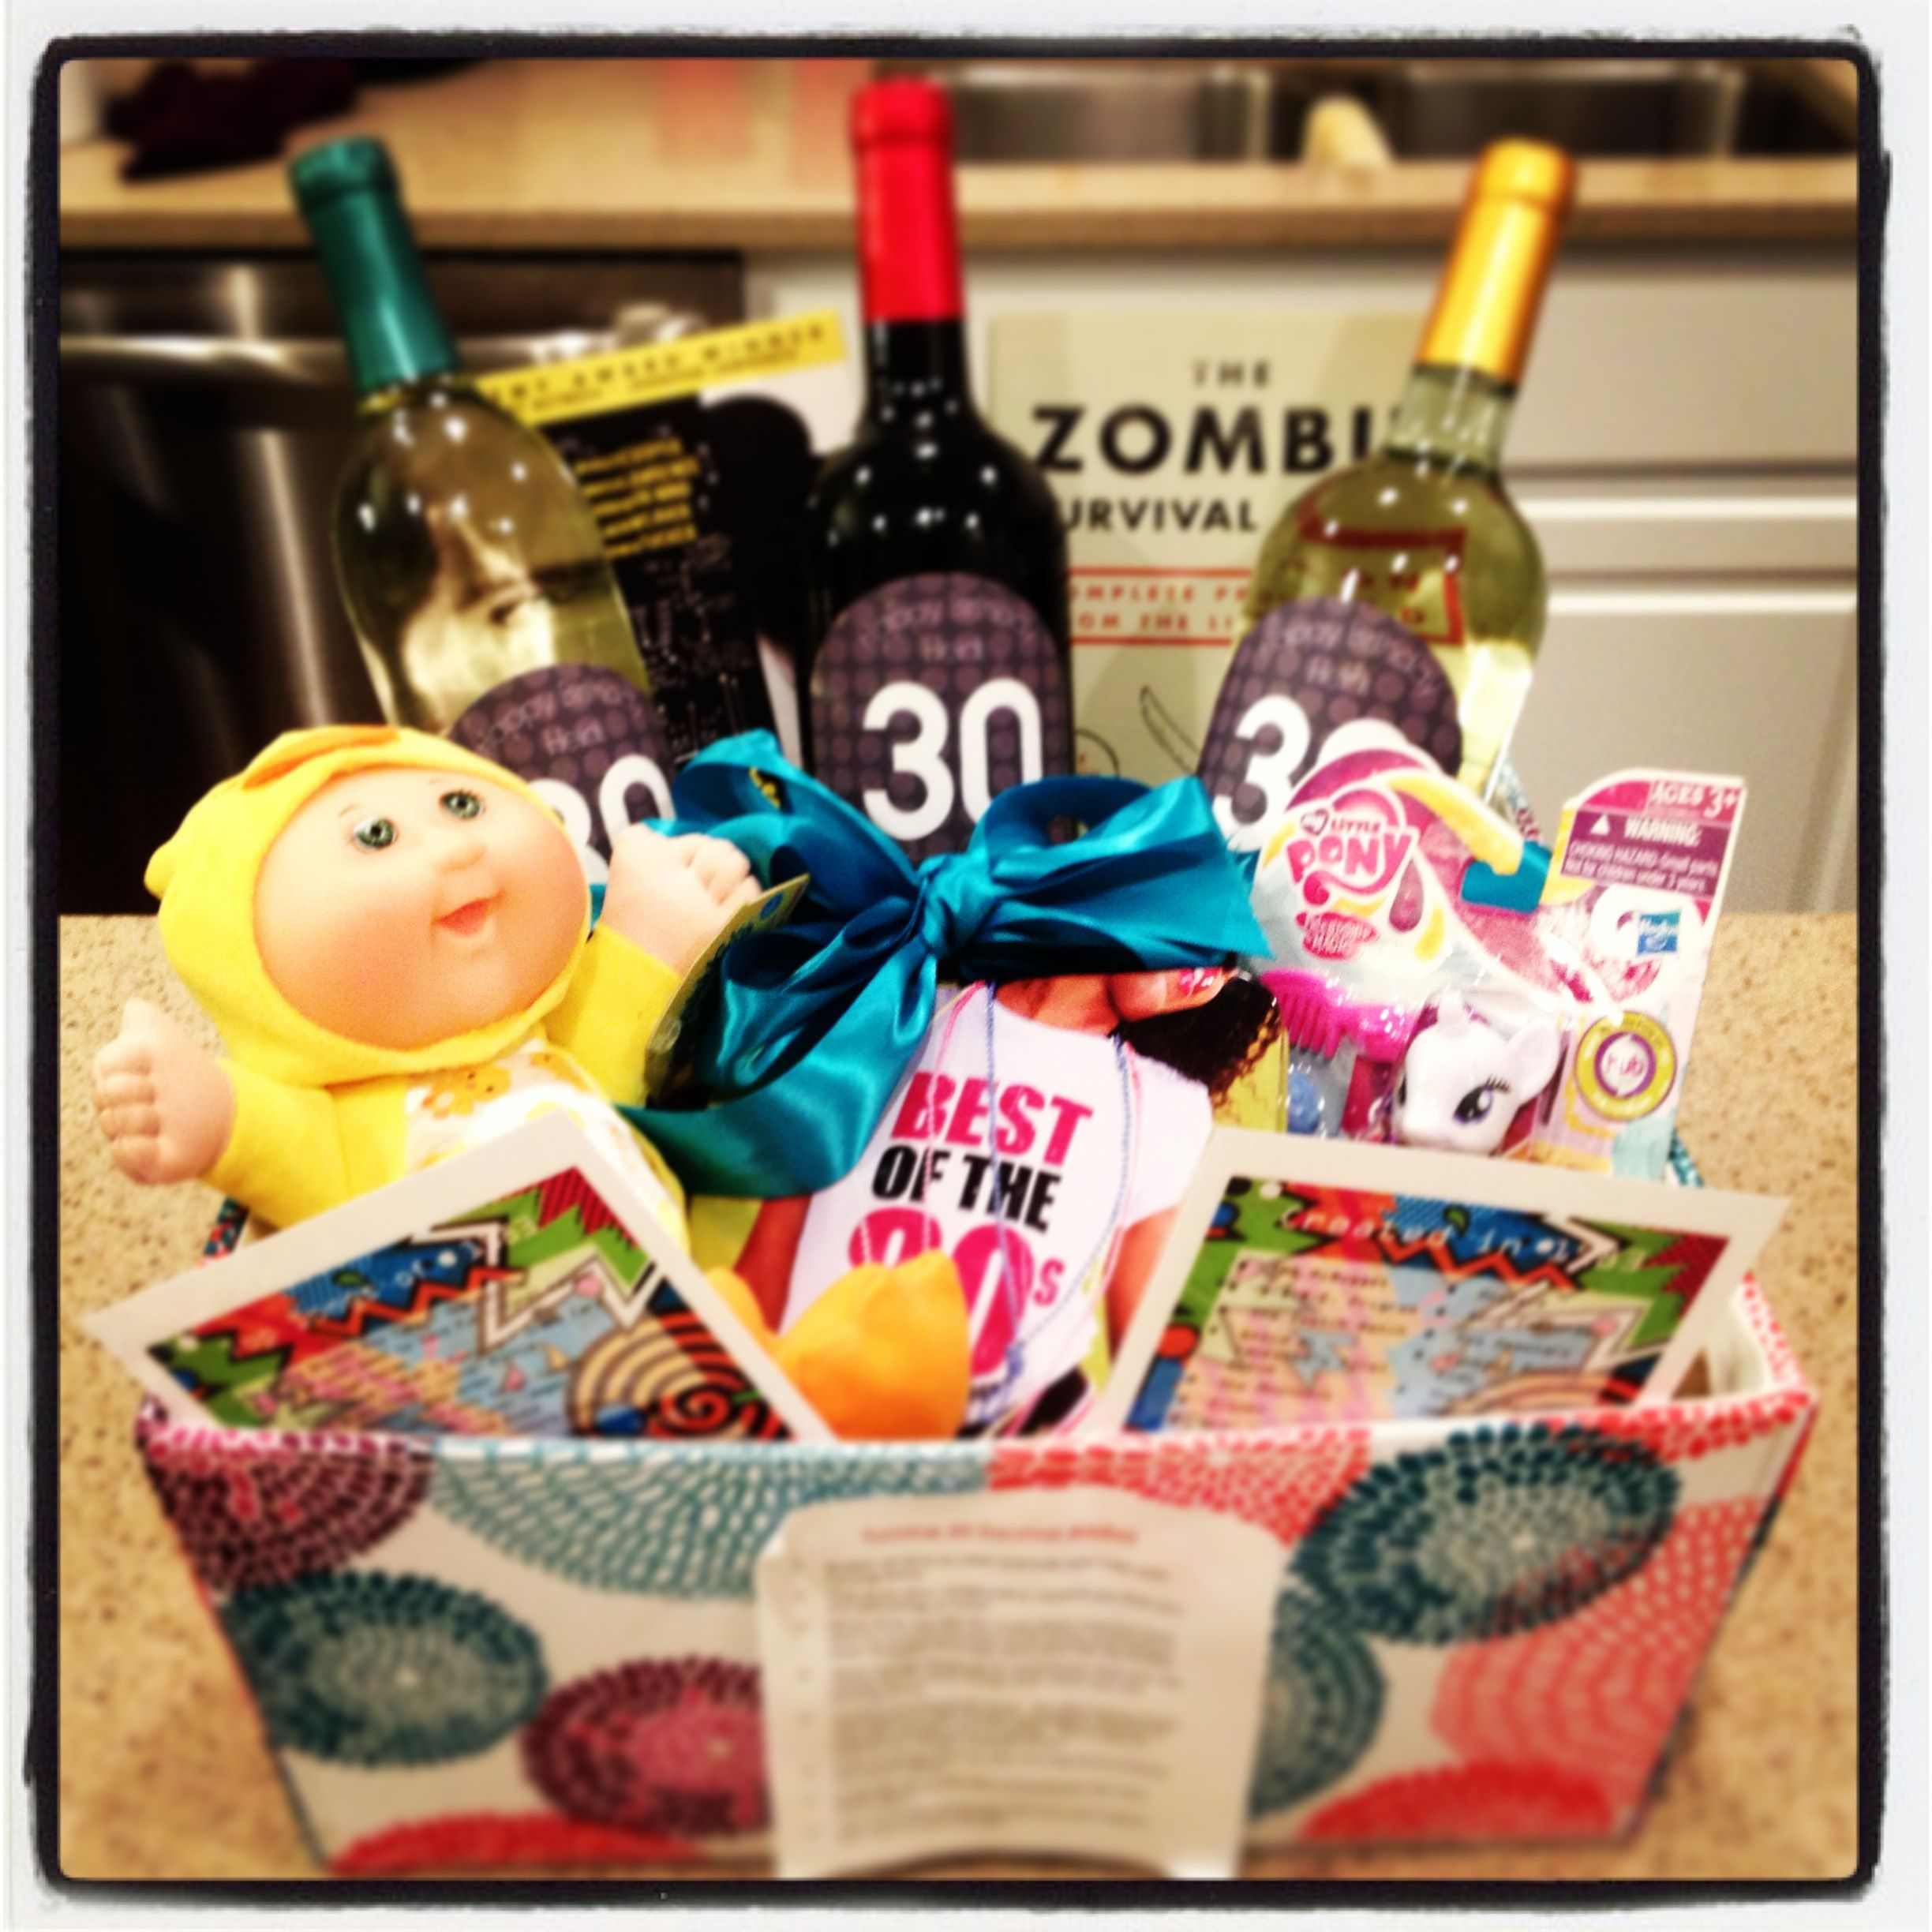 Turning 30 Birthday Basket: 30th Birthday Survival Basket